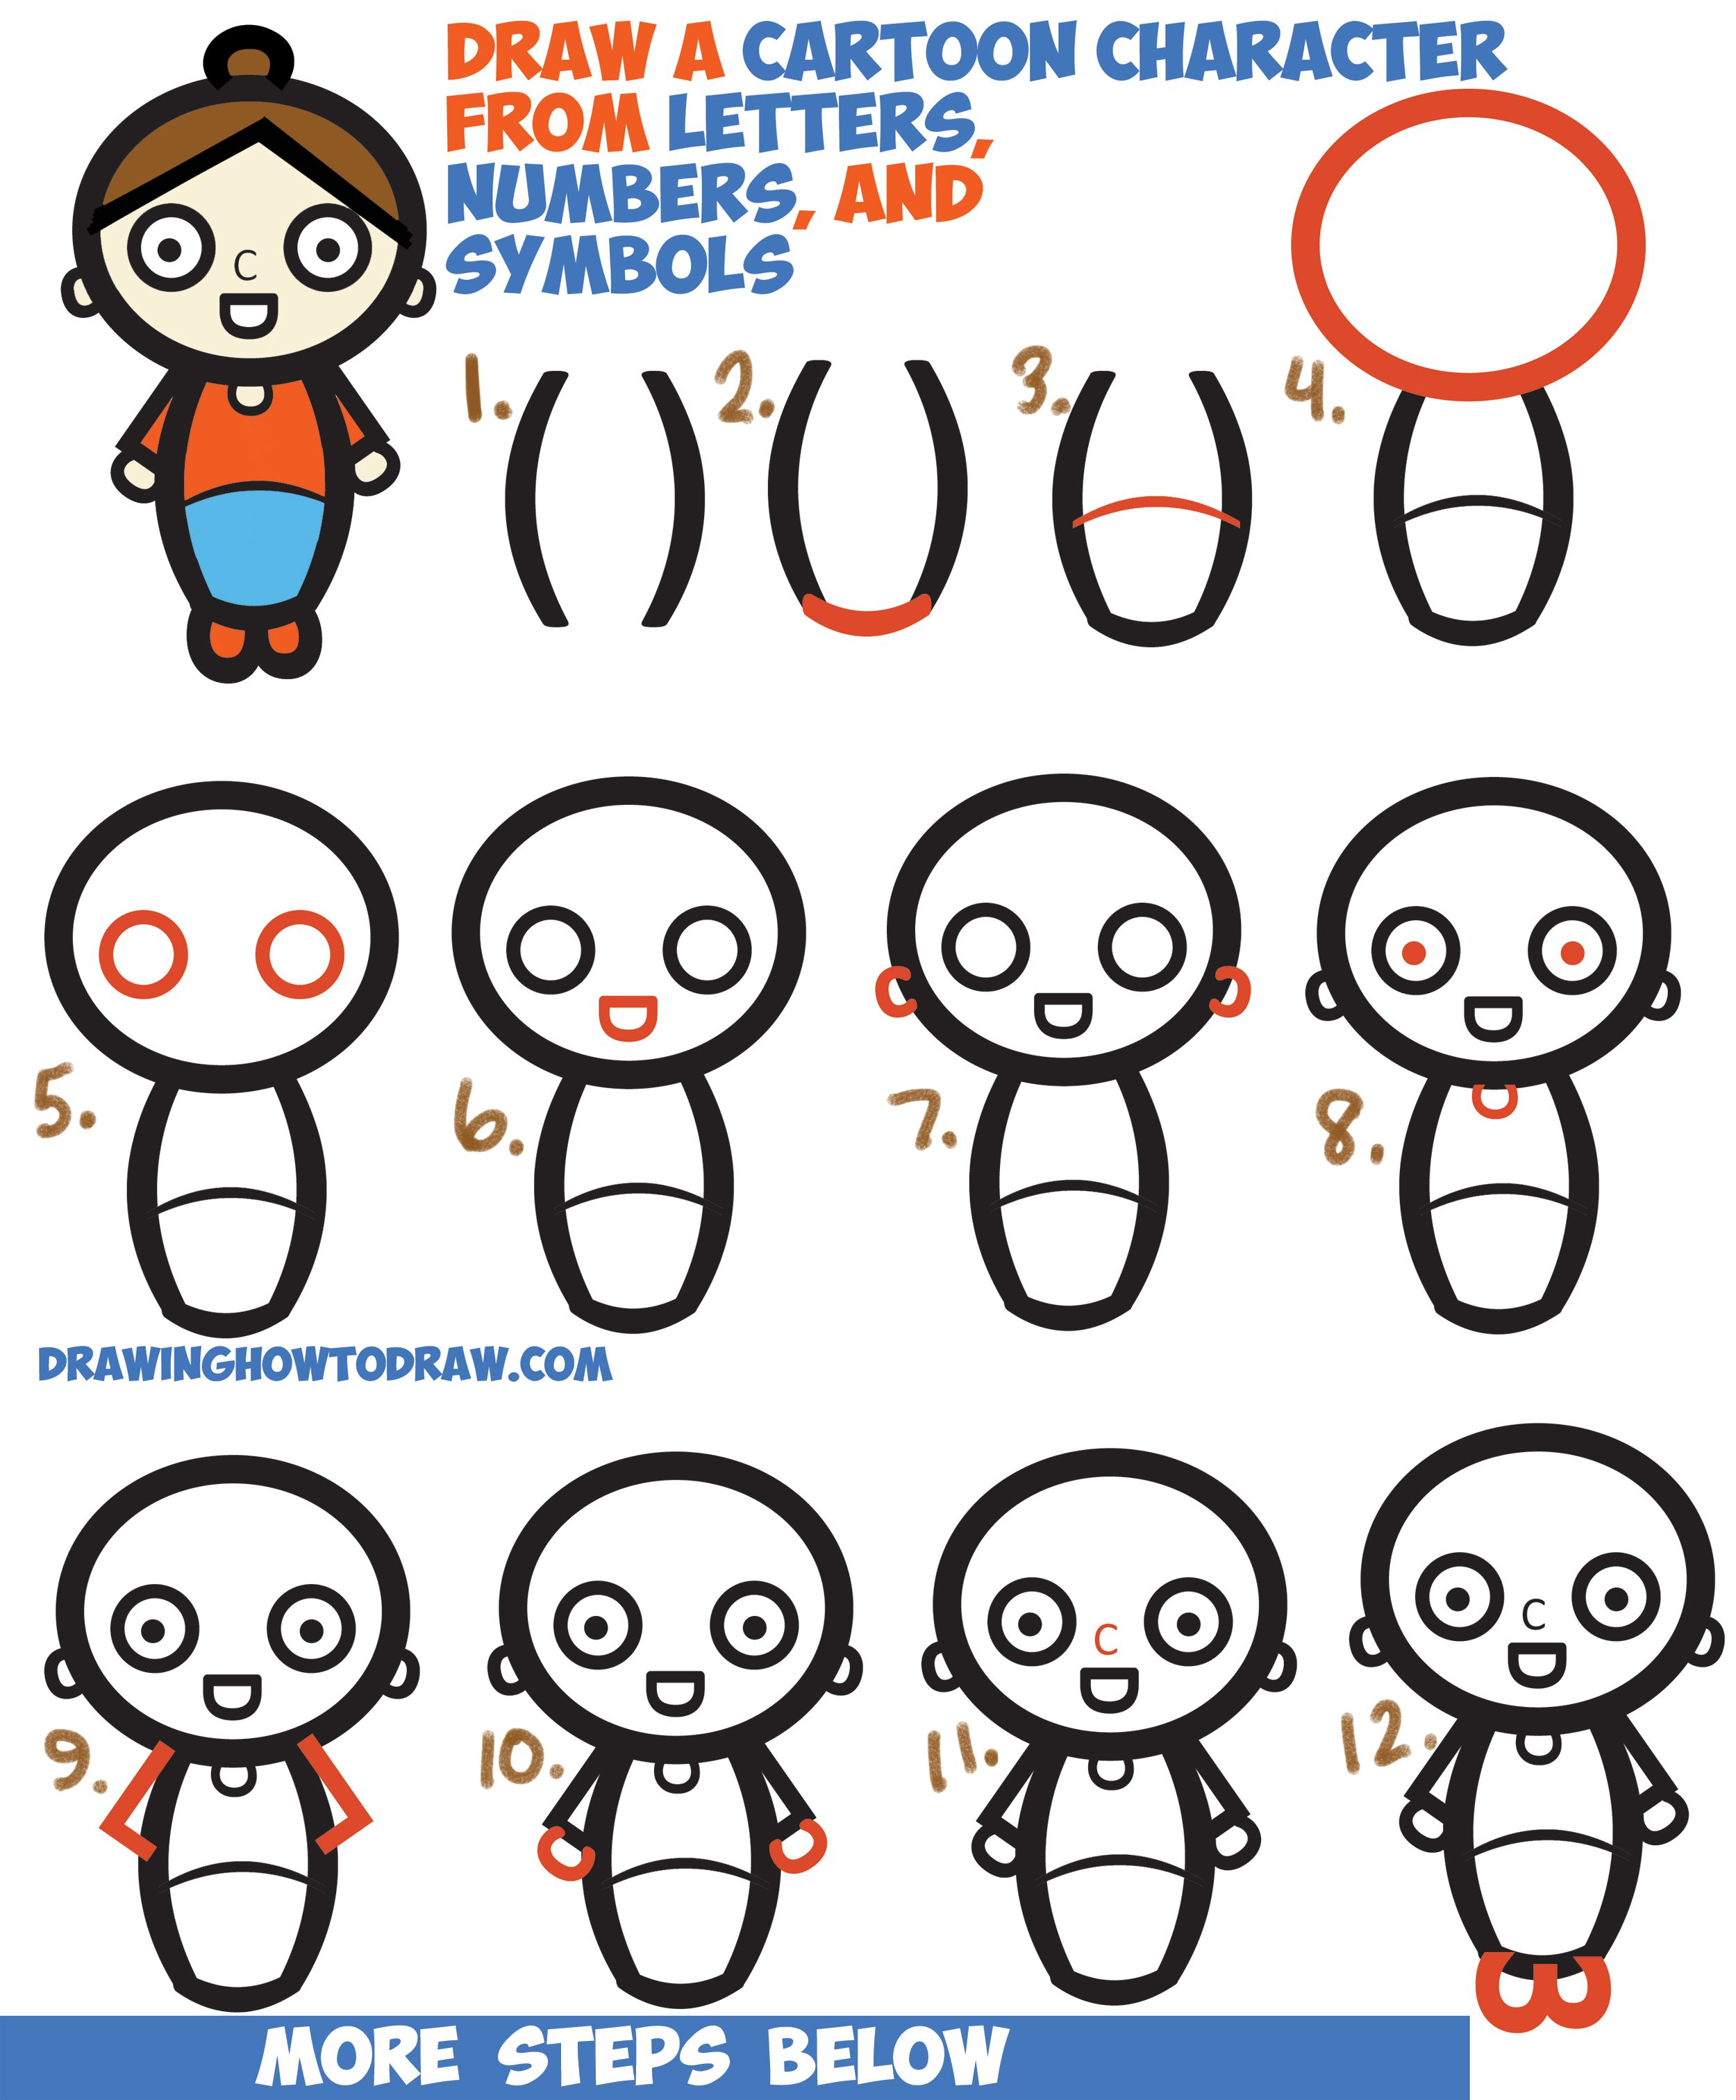 How To Draw A Cartoon Woman Character From Letters Numbers Symbols Easy Step By Step Drawing Tutorial For Kids How To Draw Step By Step Drawing Tutorials Easy Cartoon